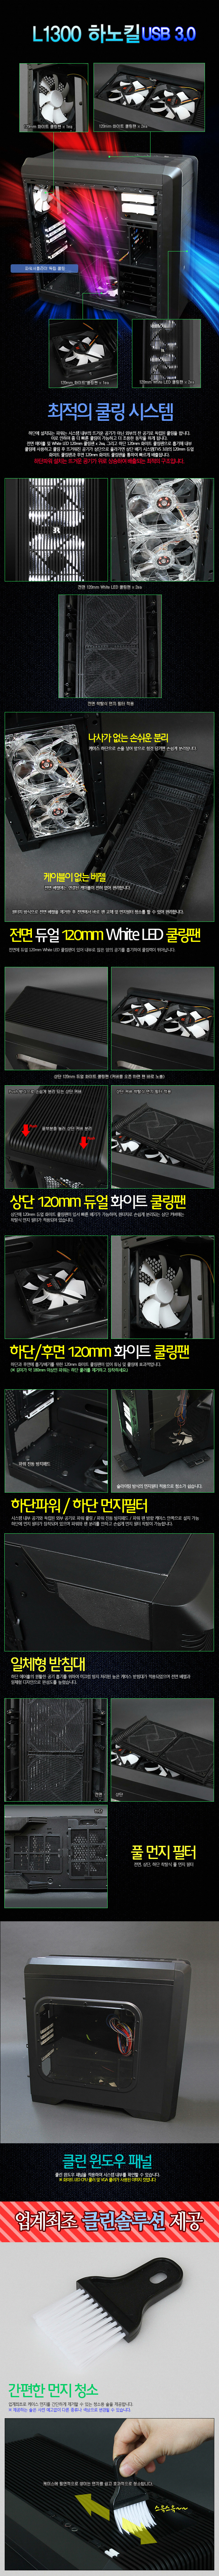 l1300_black_hnk_contents_02new_700px.jpg